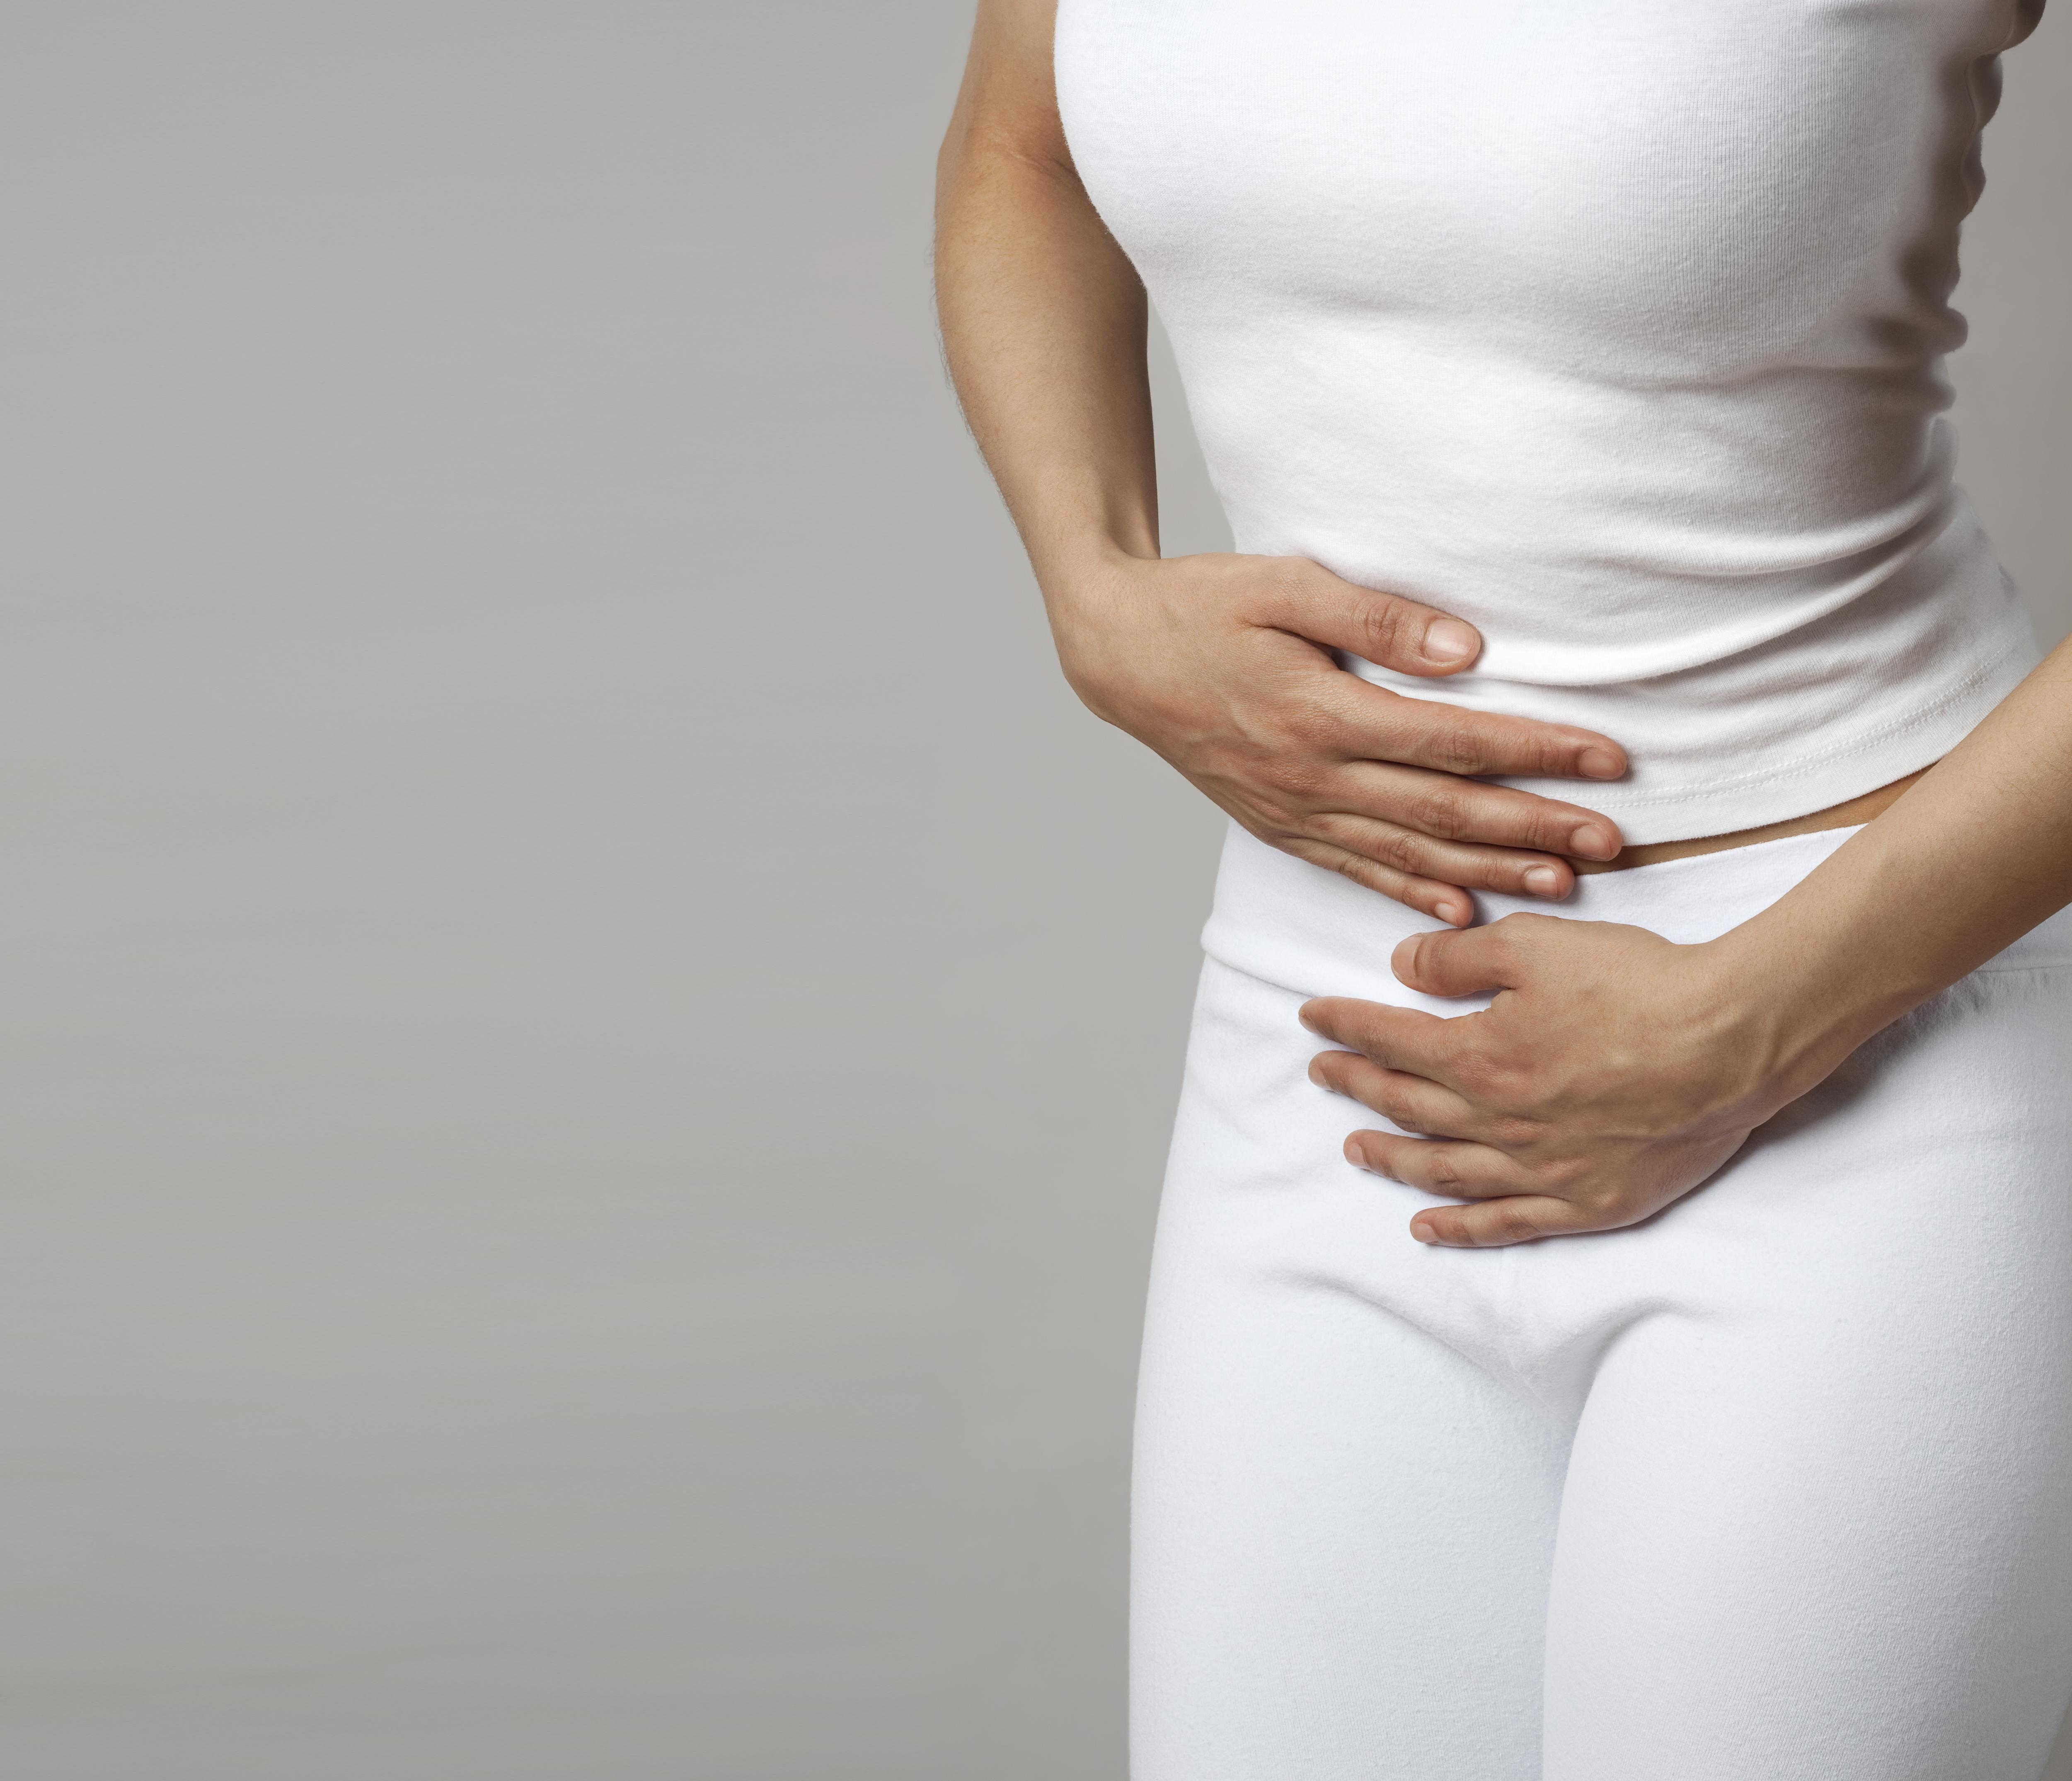 Have GERD? Stomach Acid May Not Be the Only Cause, Study Says